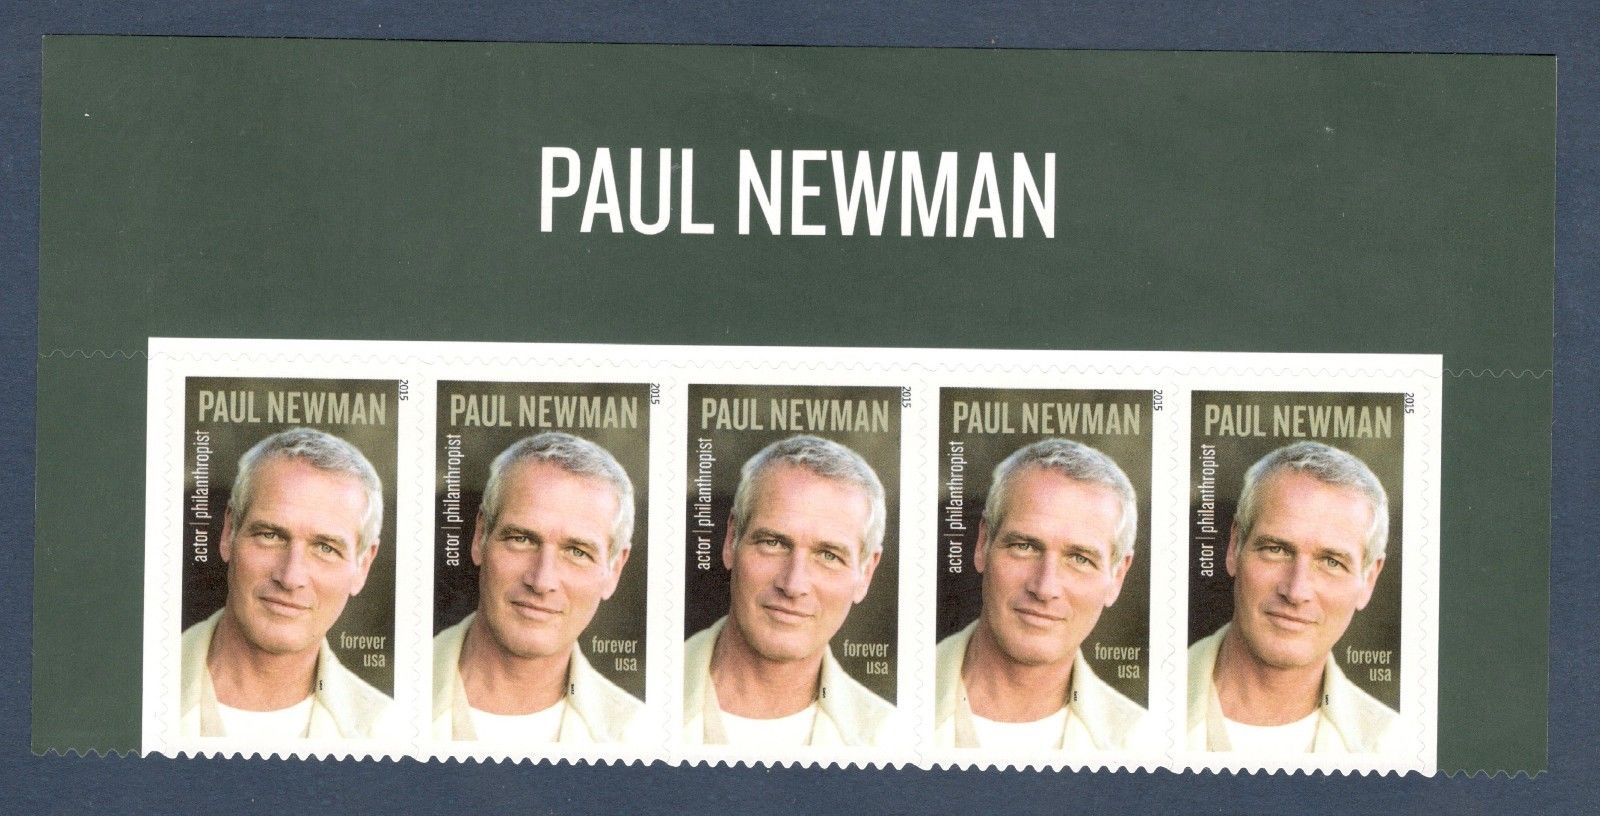 5020 Paul Newman Header W 5 Stamps Mint Nh Free Shipping HipStamp